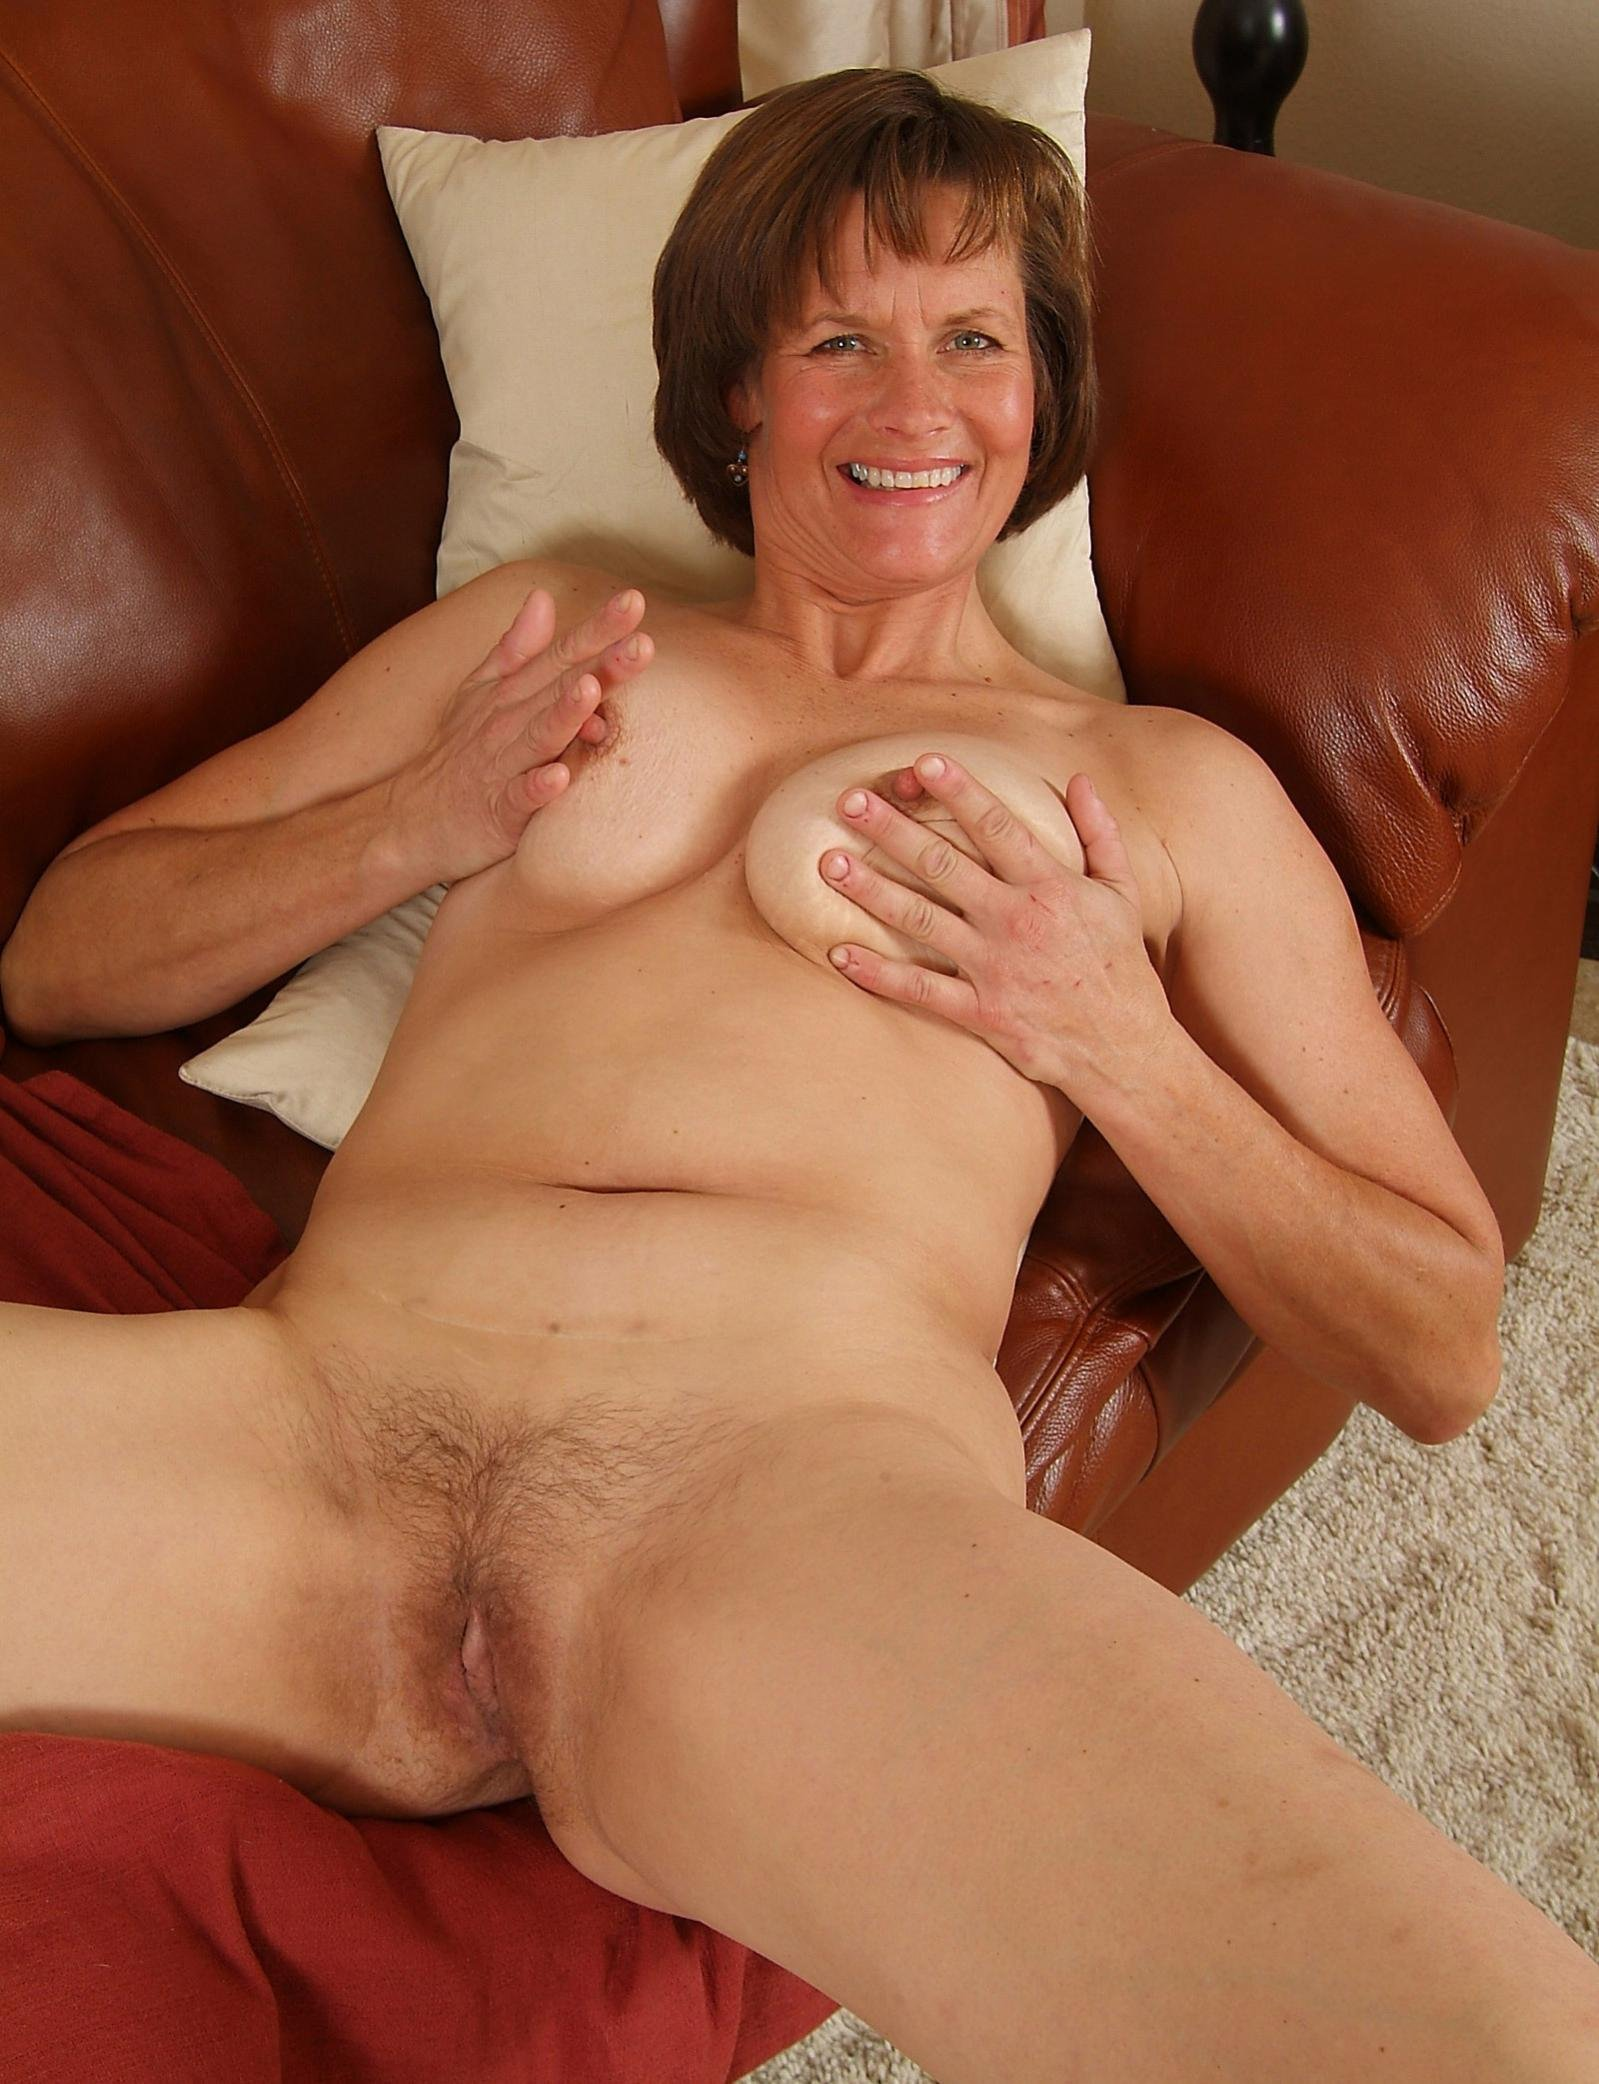 women-sixty-years-old-naked-pictures